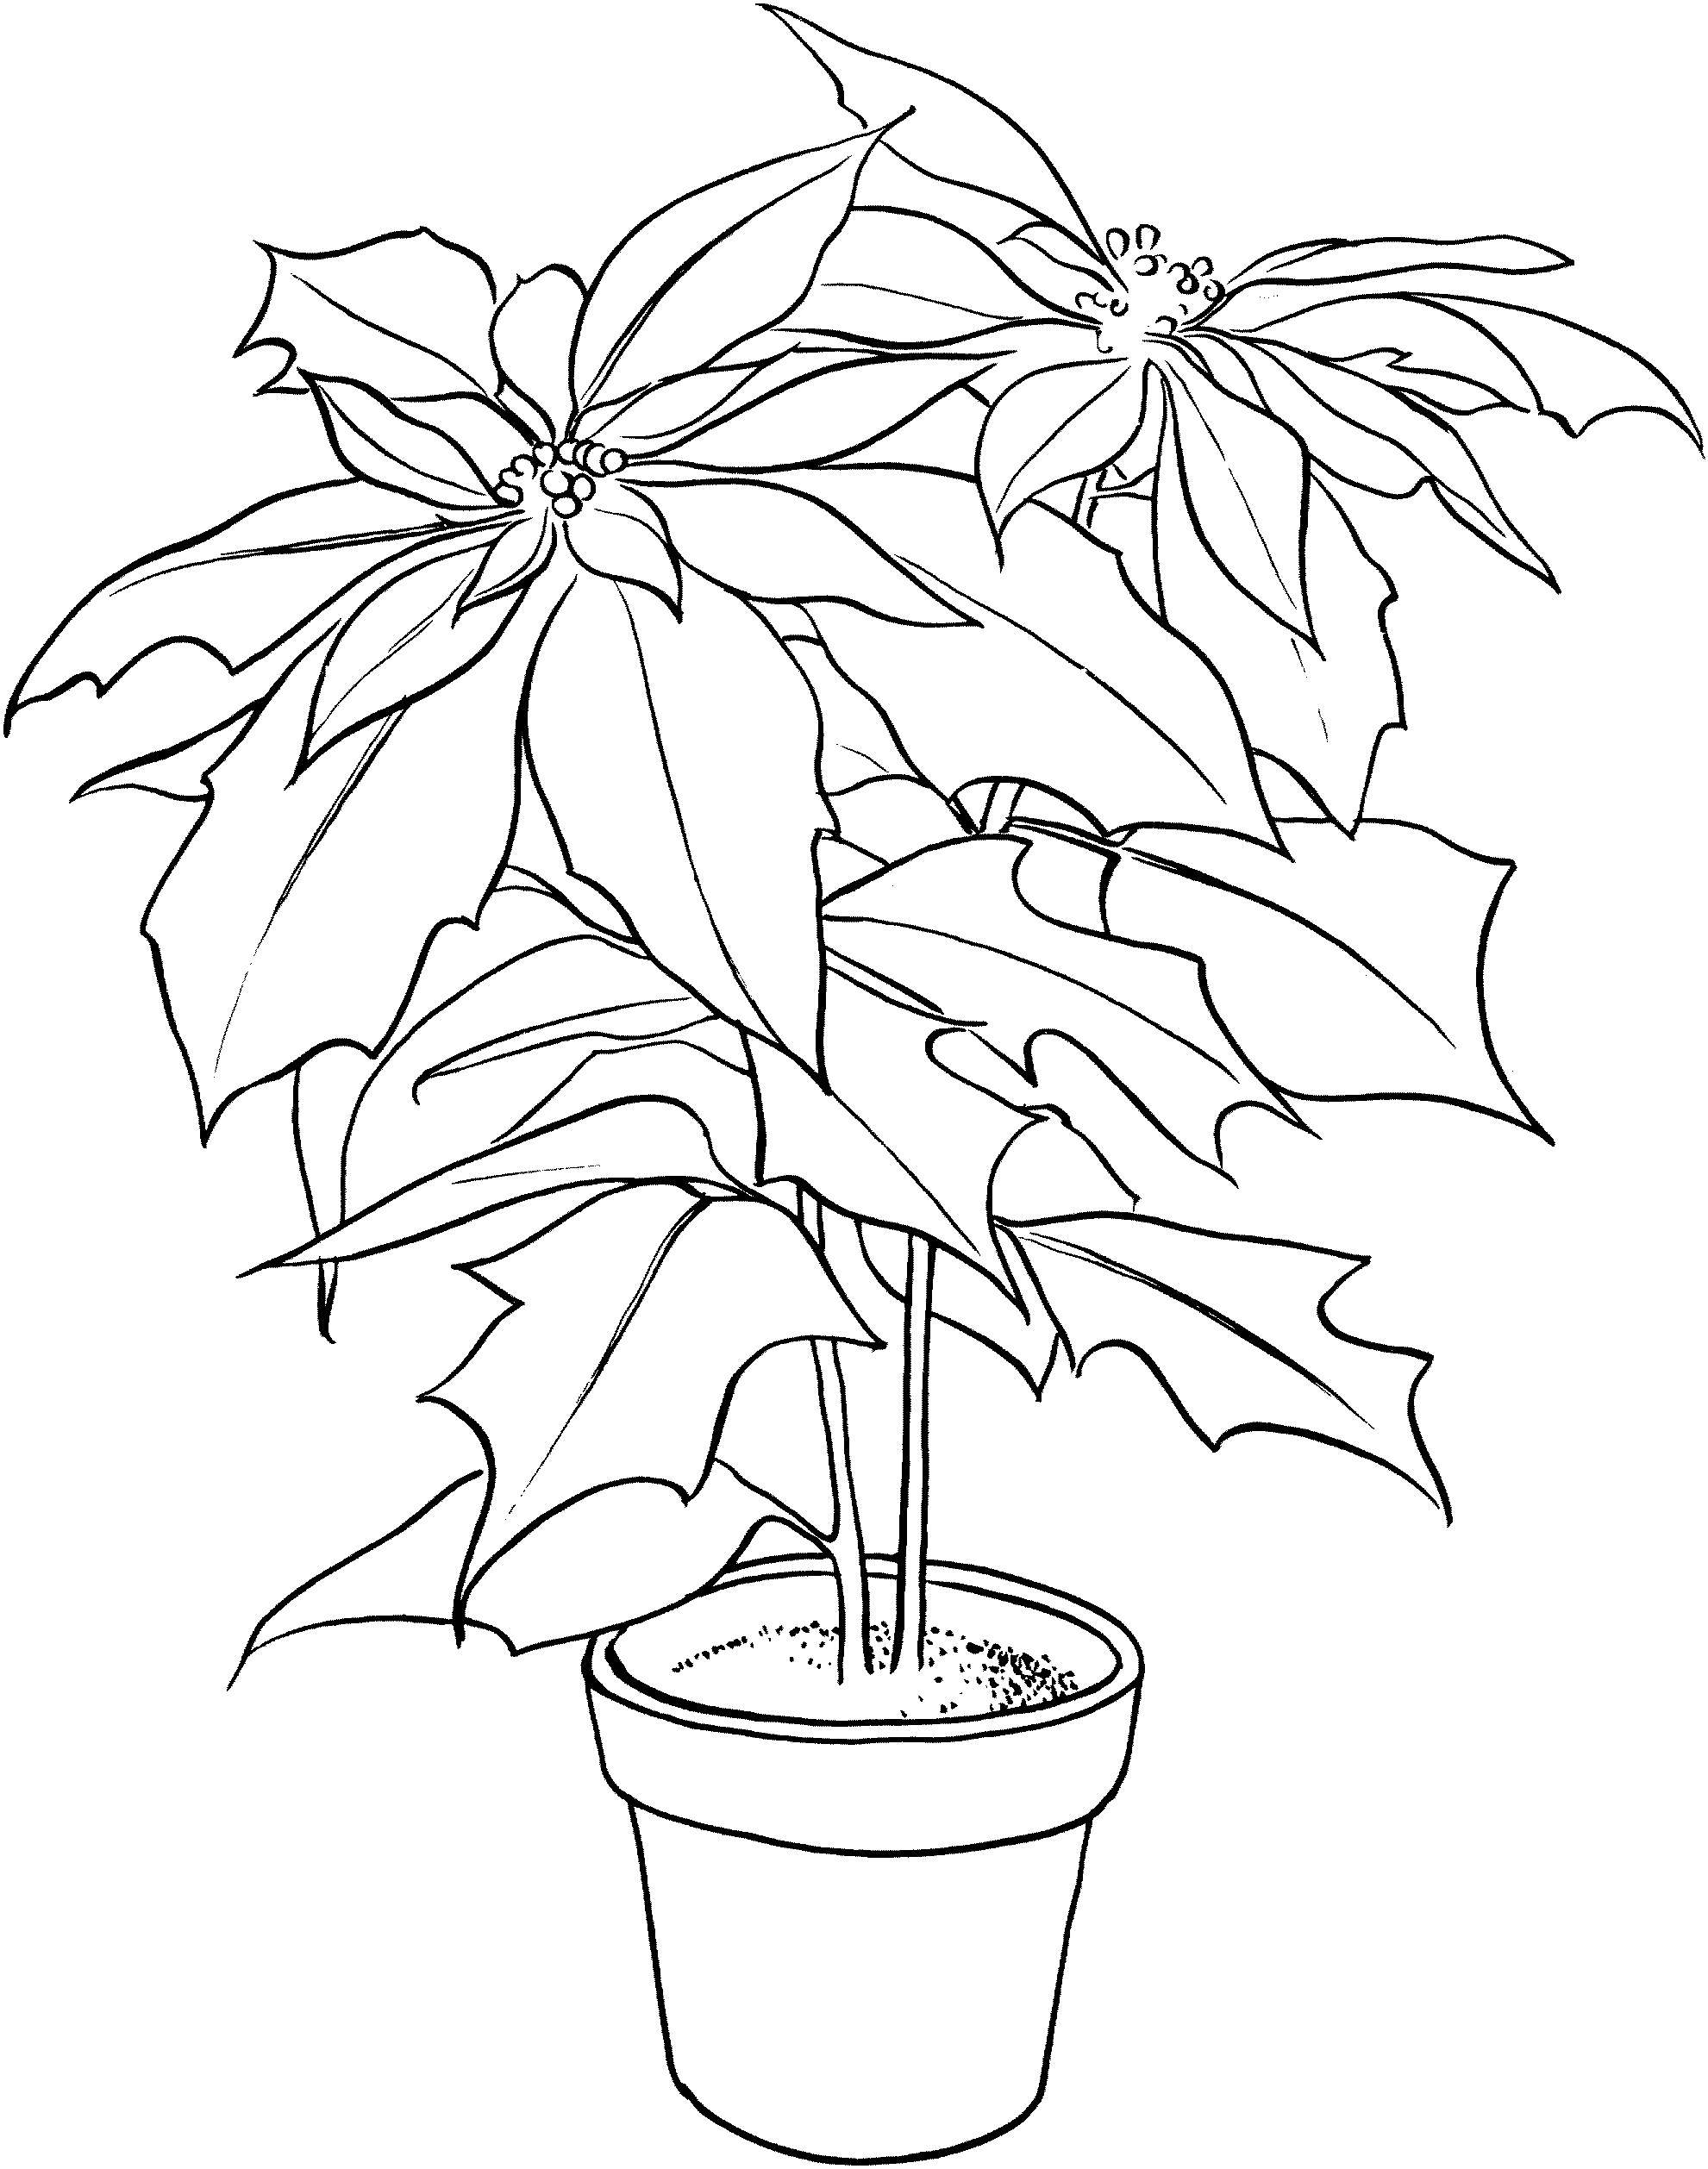 Free Printable Poinsettia Coloring